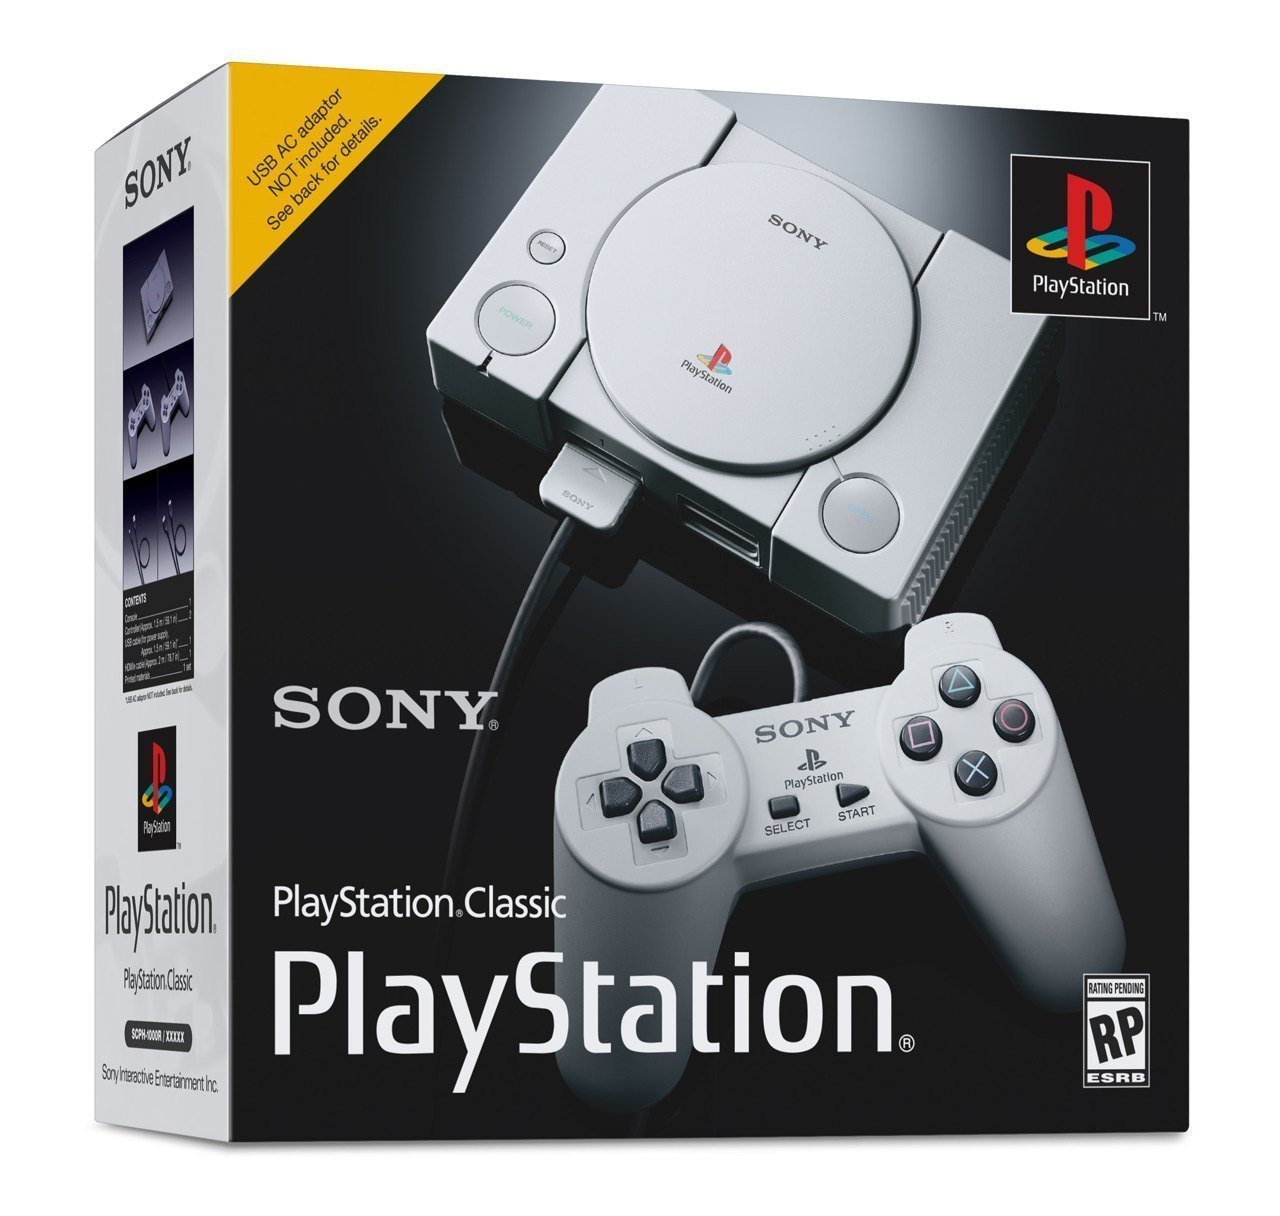 PlayStation Classic to bring back 20 classic games in time for holidays